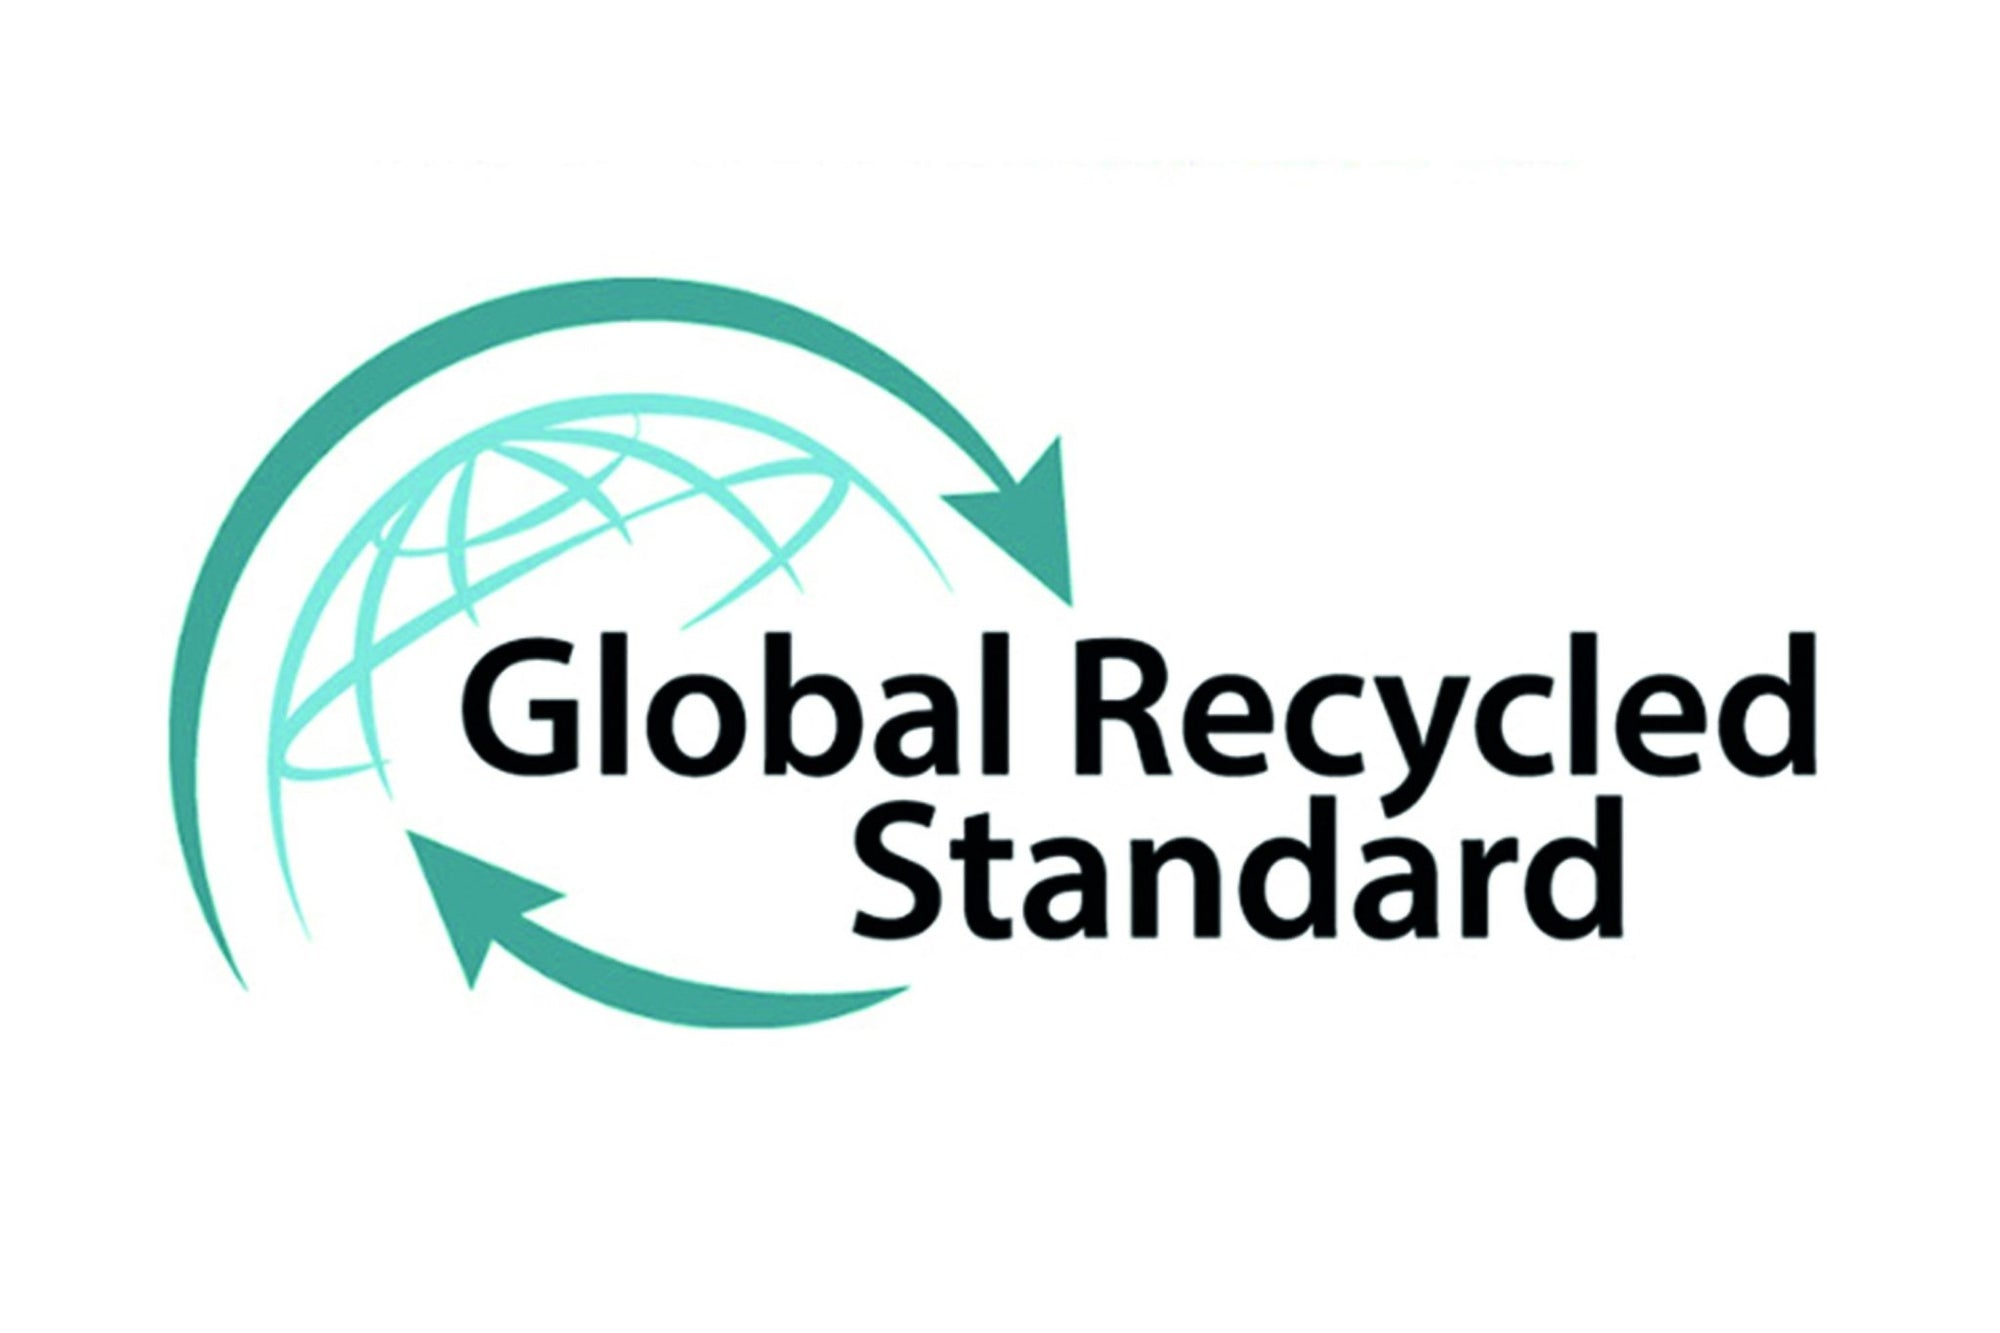 Global Recycled Standard | Vindpinad